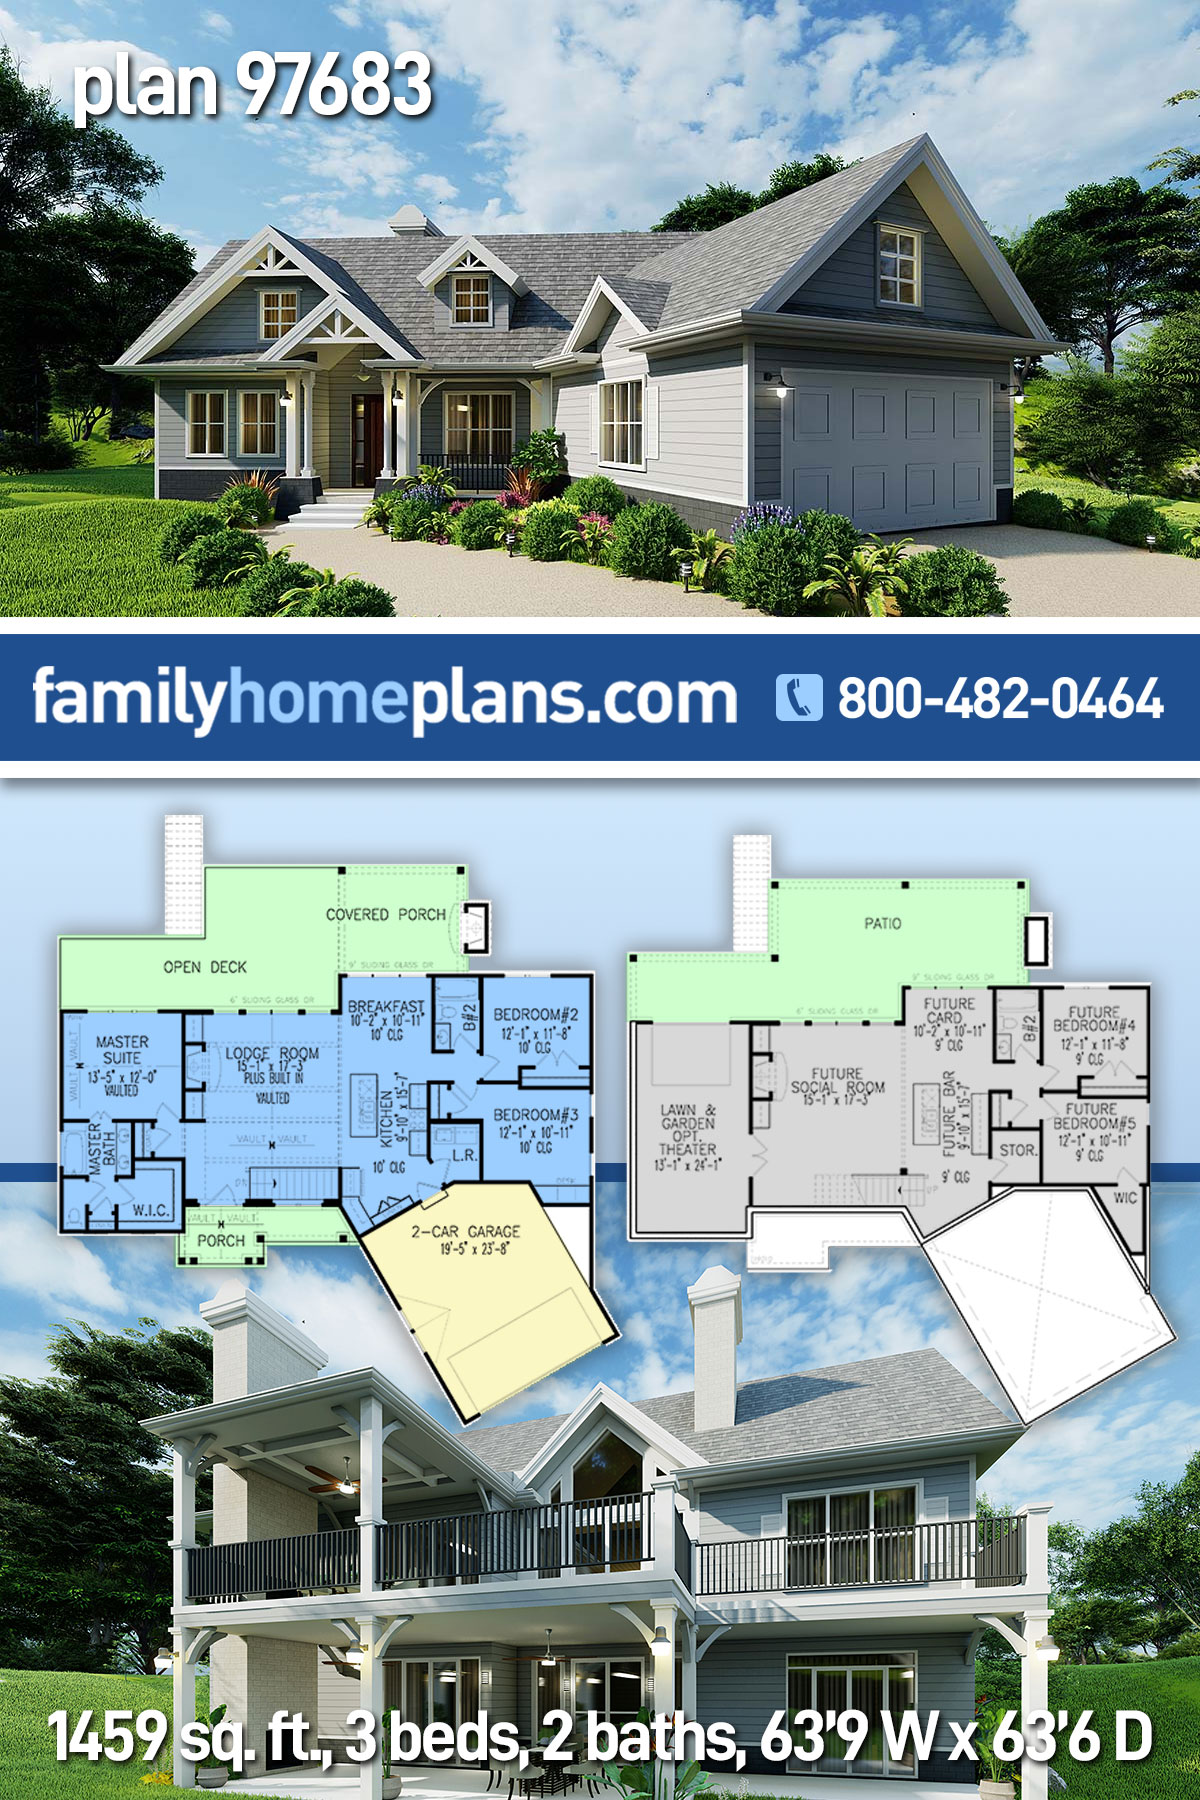 Cottage, Craftsman, One-Story House Plan 97683 with 3 Beds , 2 Baths , 2 Car Garage